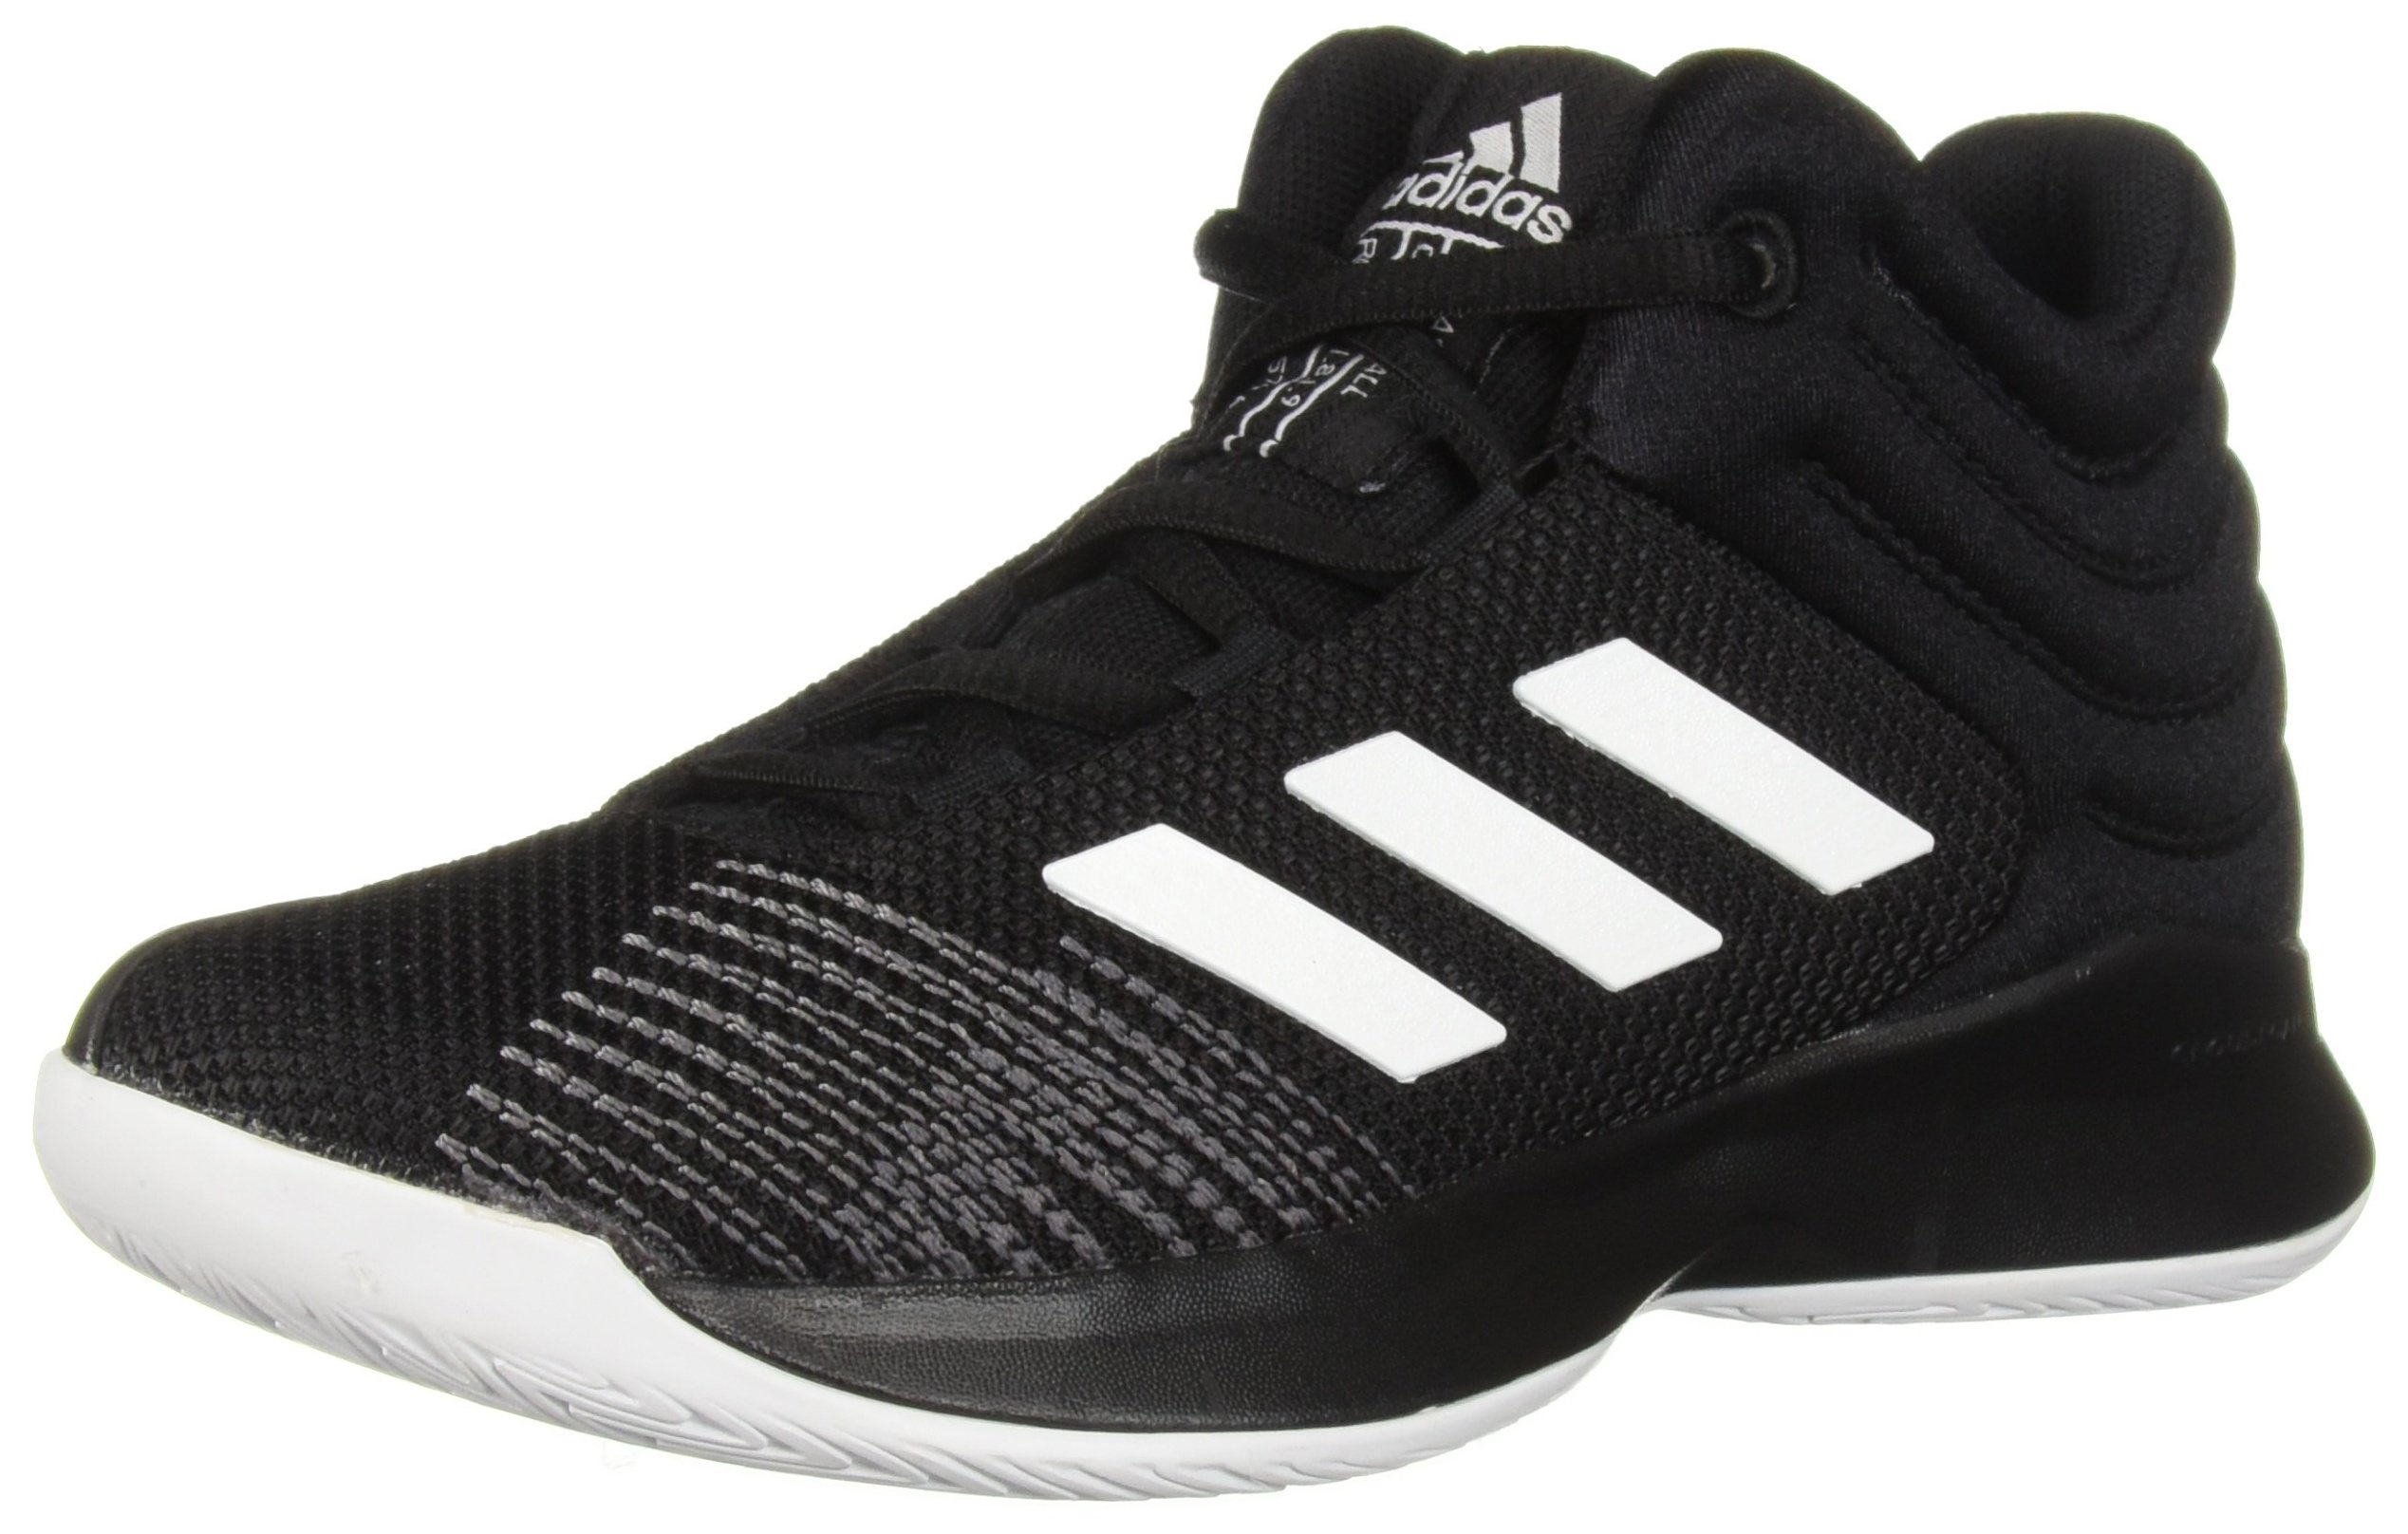 adidas Unisex Pro Spark 2018 Basketball Shoe Black/White/Grey 1 M US Little Kid